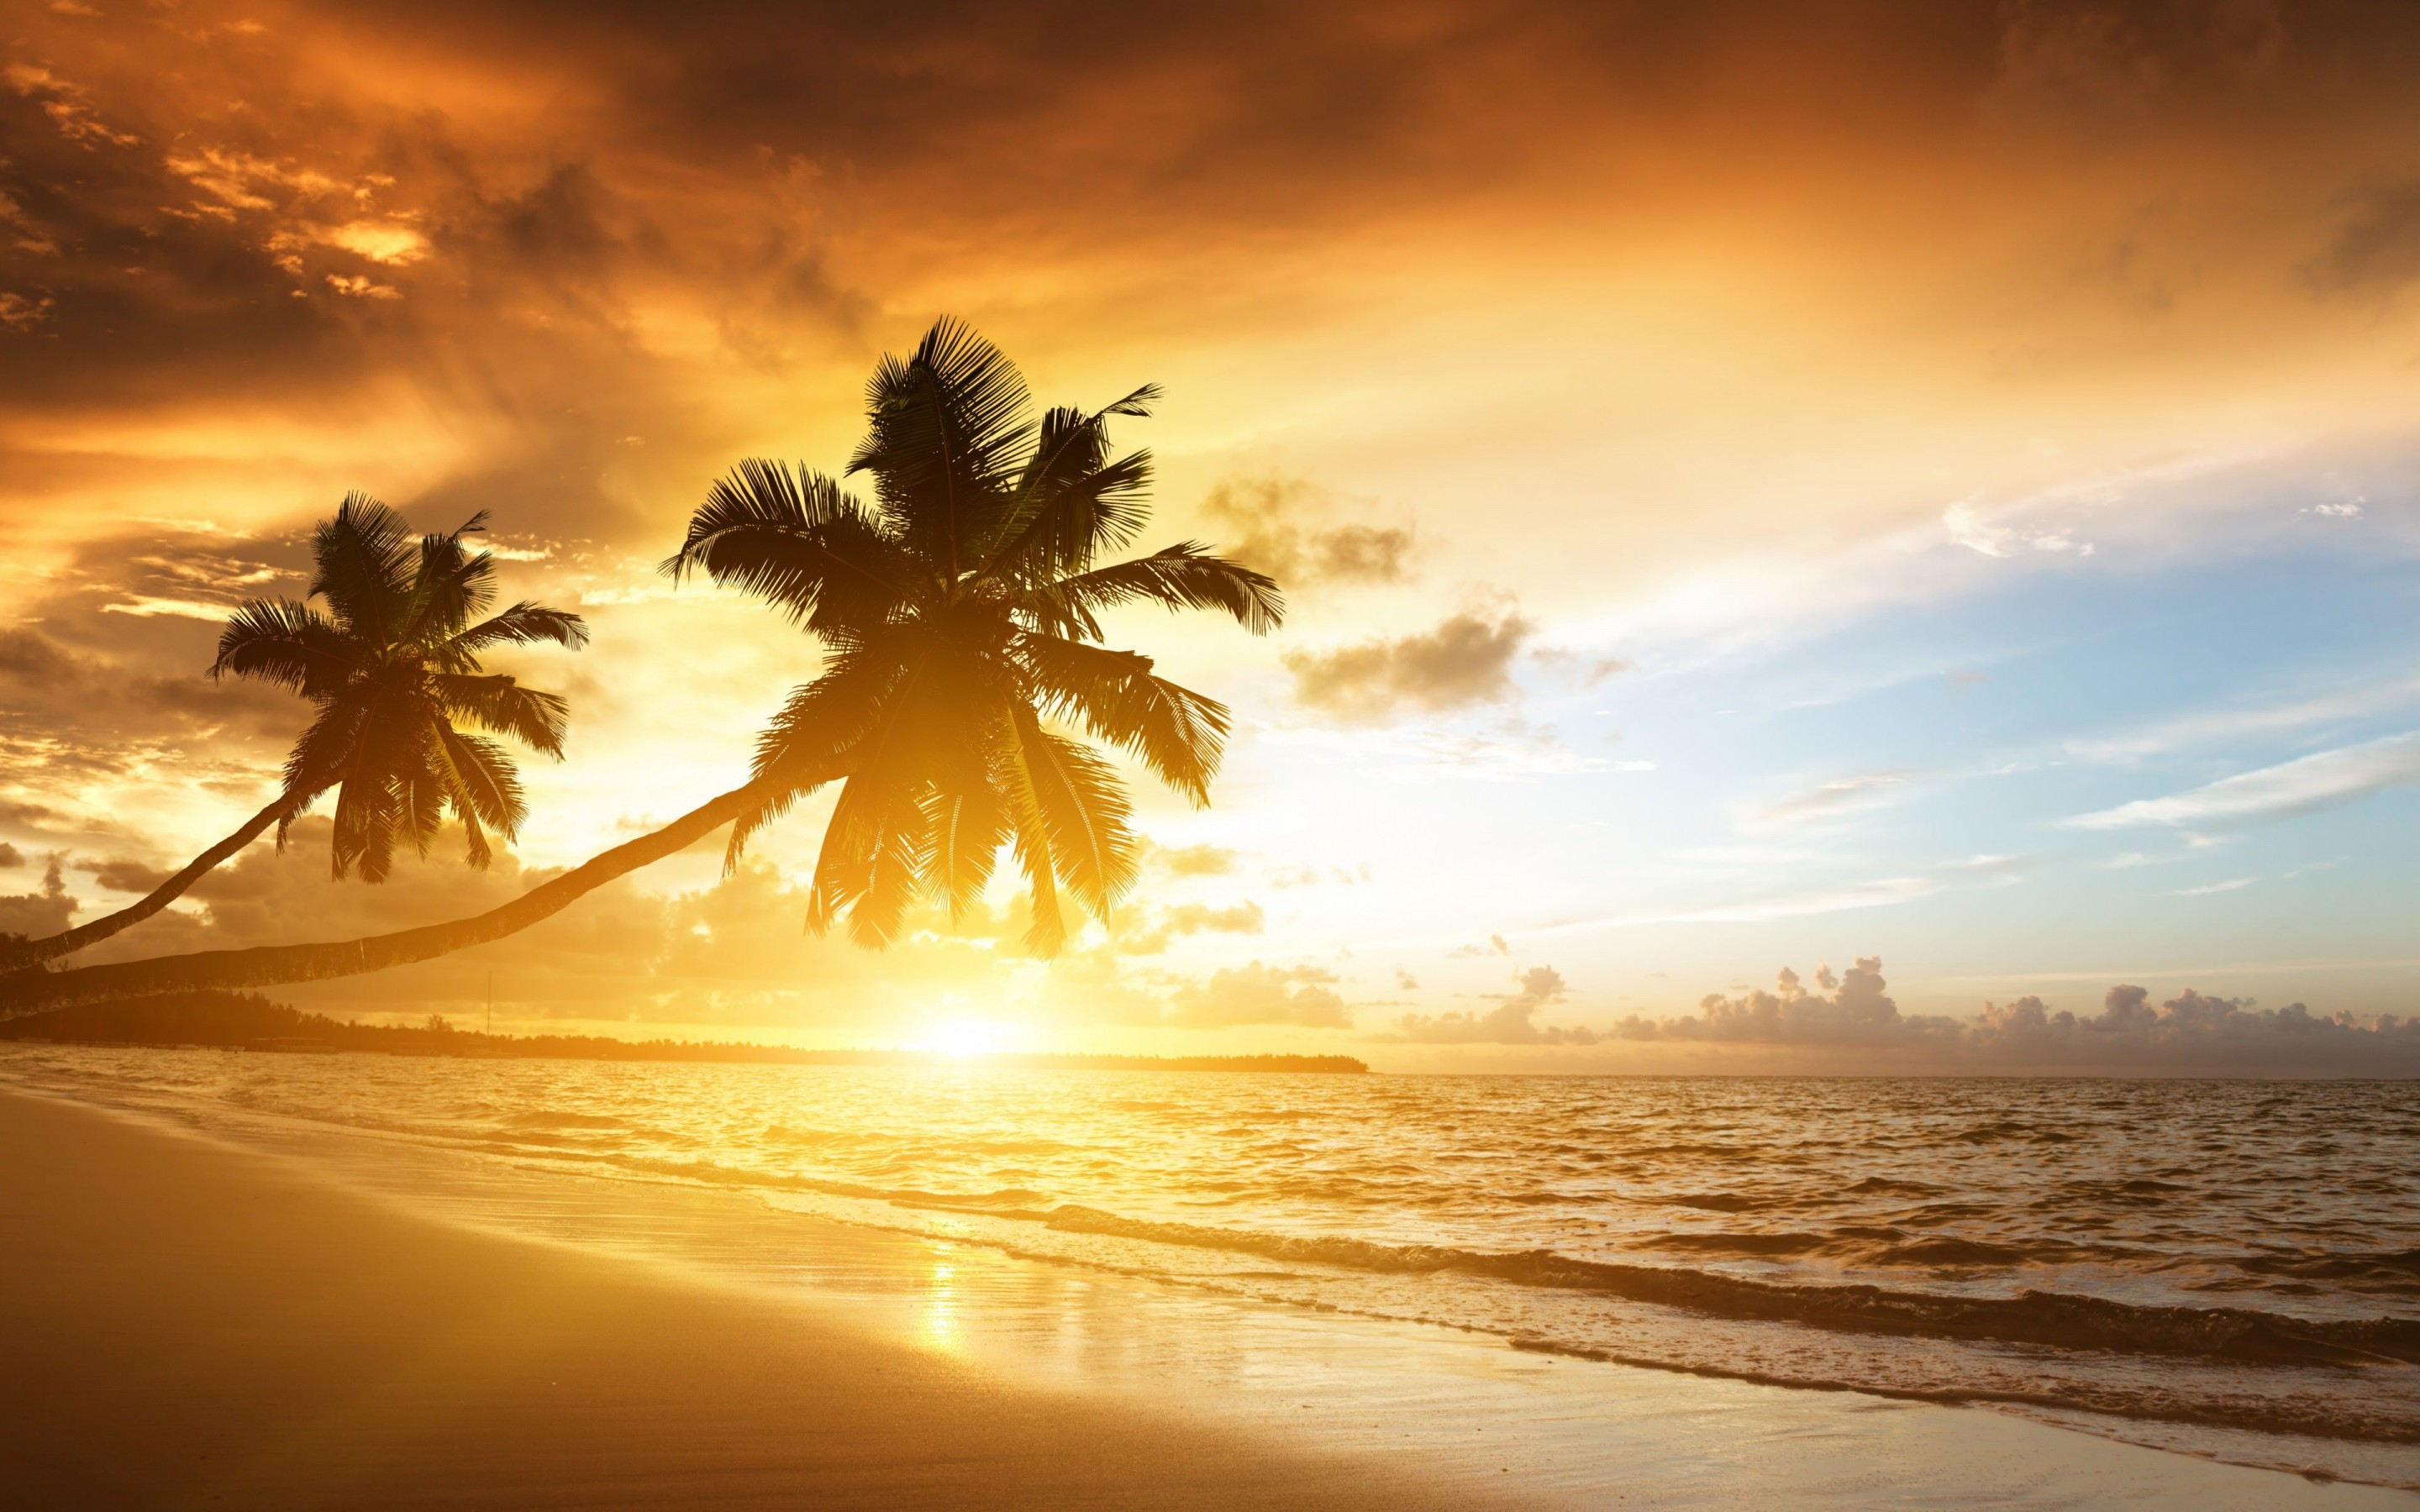 Beach With Palm Trees At Sunset Wallpaper for Desktop 2880x1800